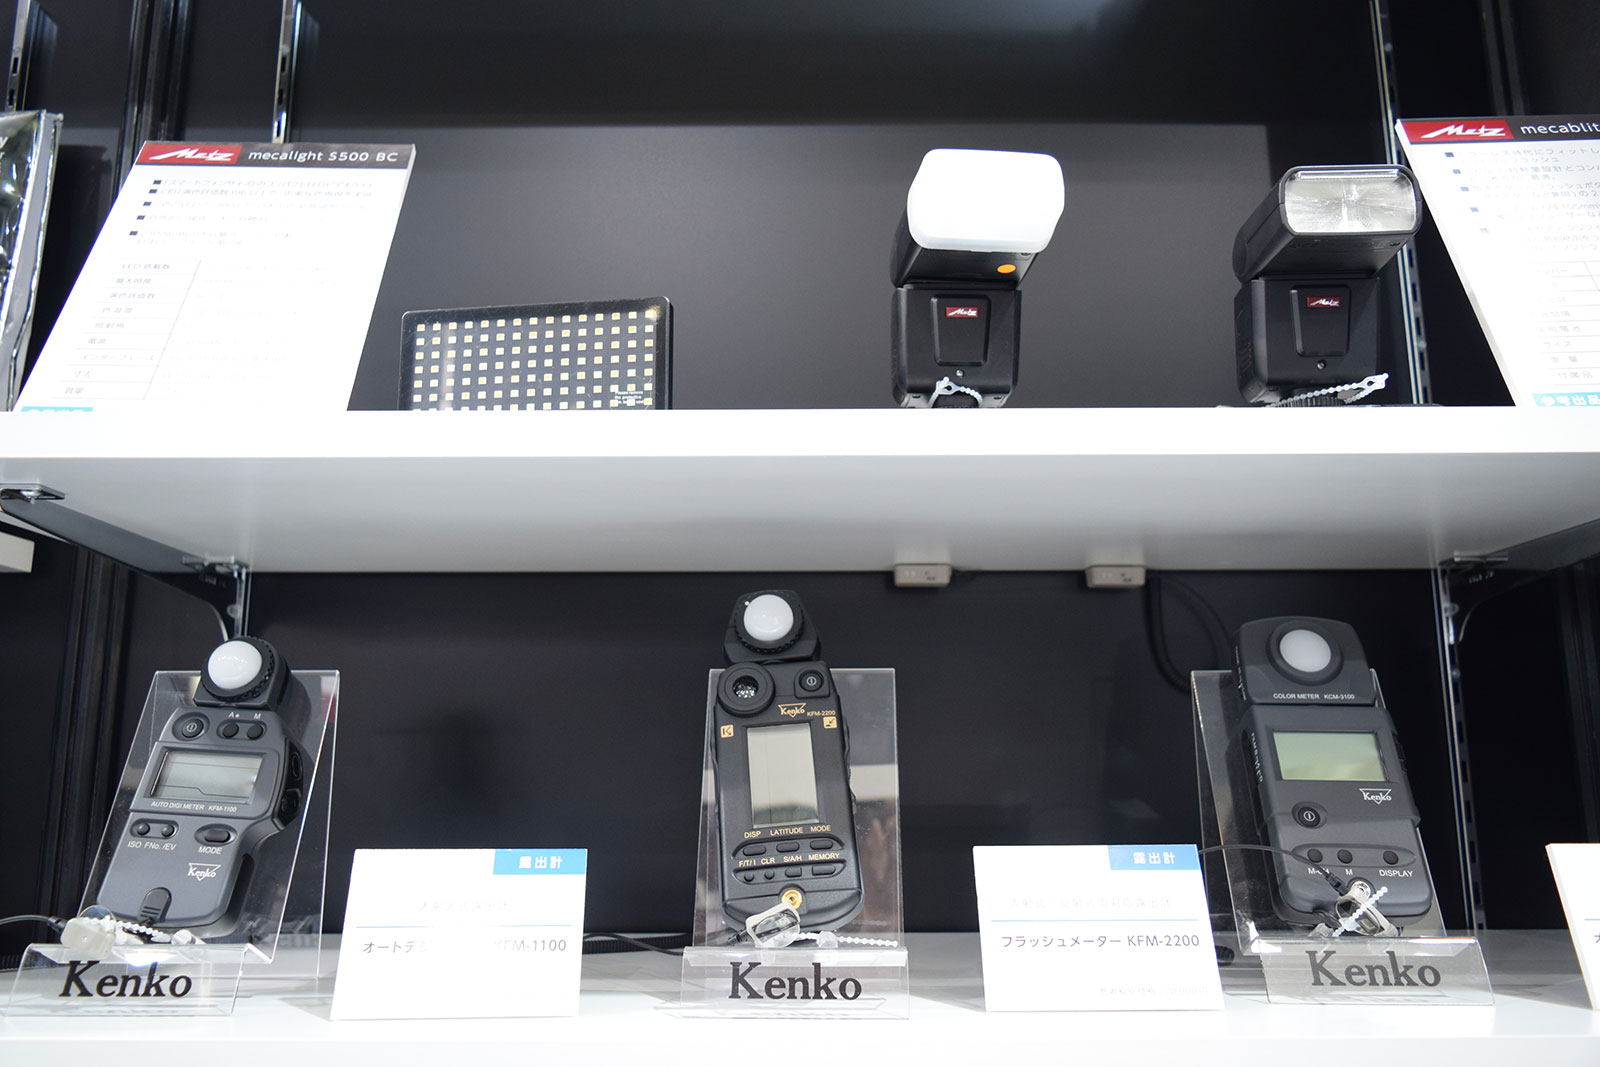 We know exposure, light and color temperature are among the most important factors to consider in photography. In this corner, we therefore displayed our selection of Kenko Color and Flash Meters.